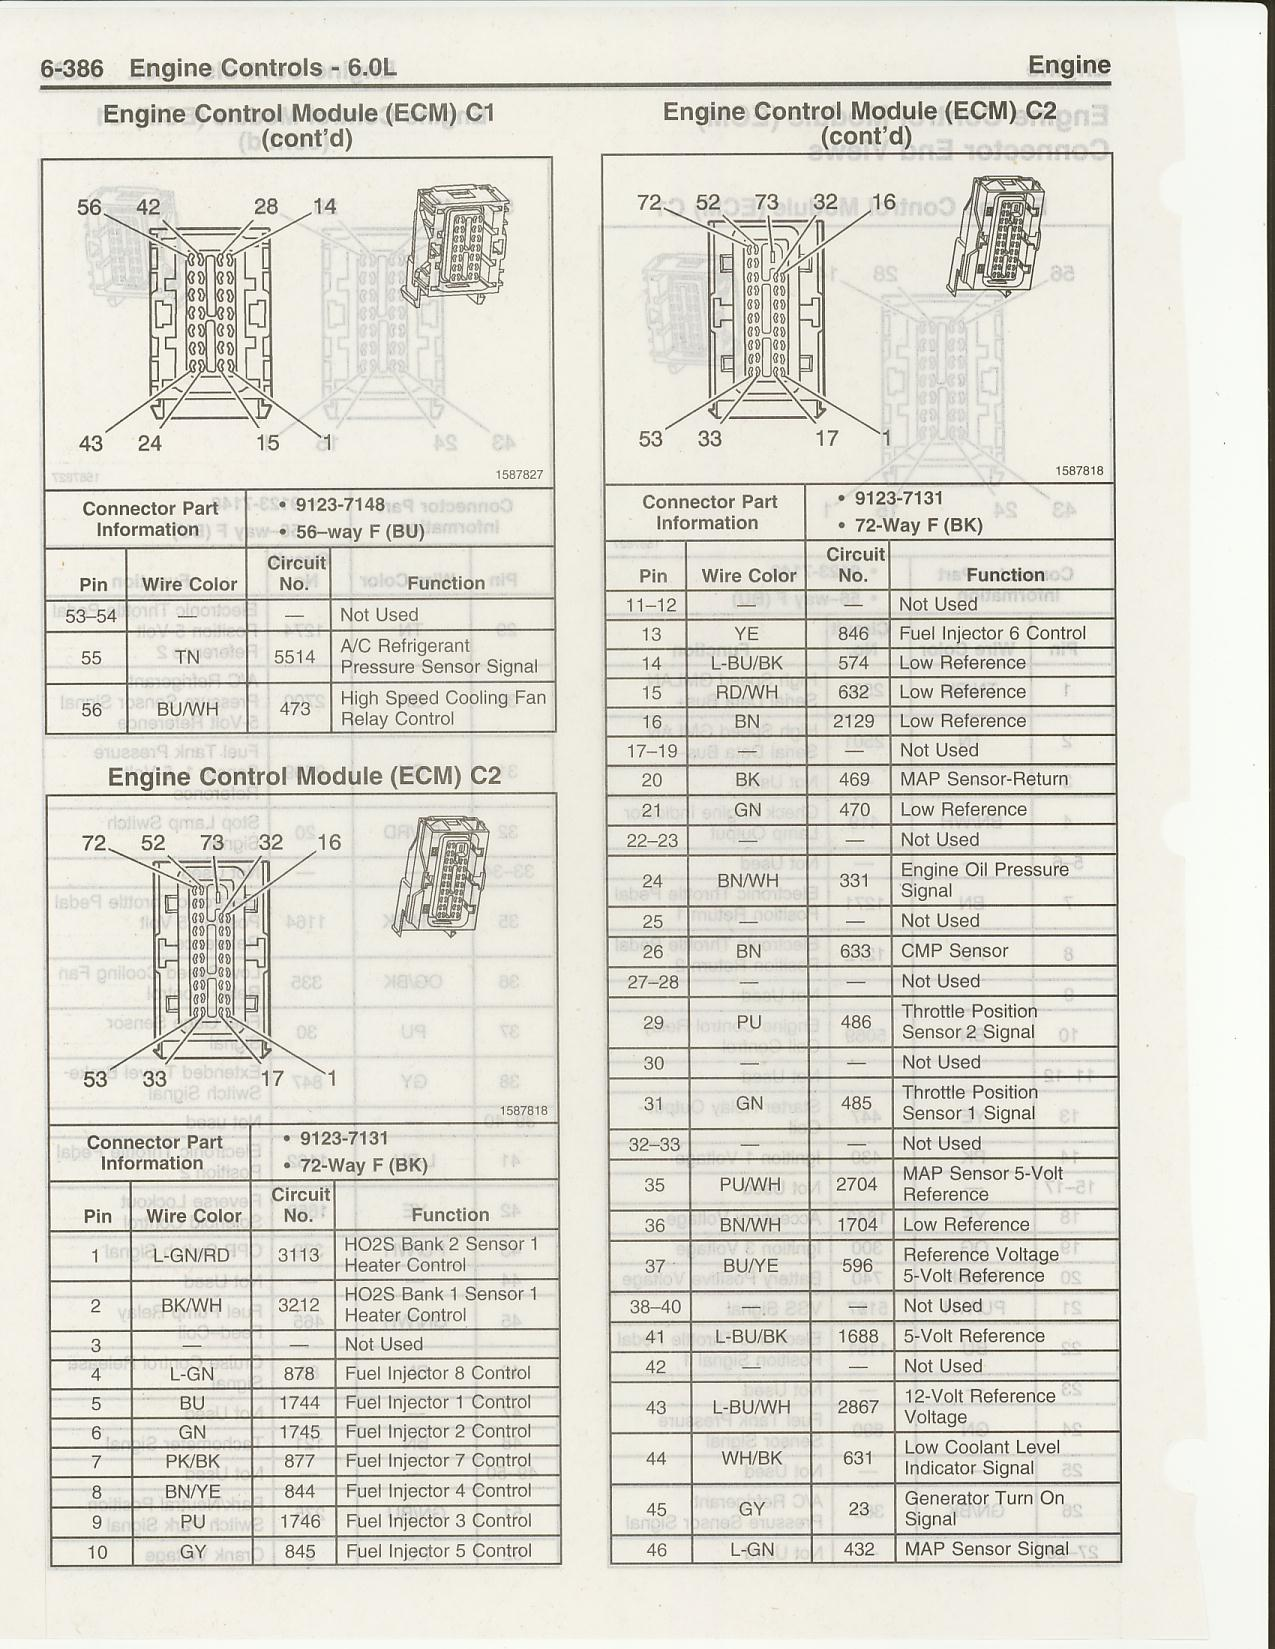 Pinouts And Wiring Diagrams Page 4 Ls1tech Camaro Firebird 2001 Gmc Yukon Denali Engine Diagram Ls2 C1 C2